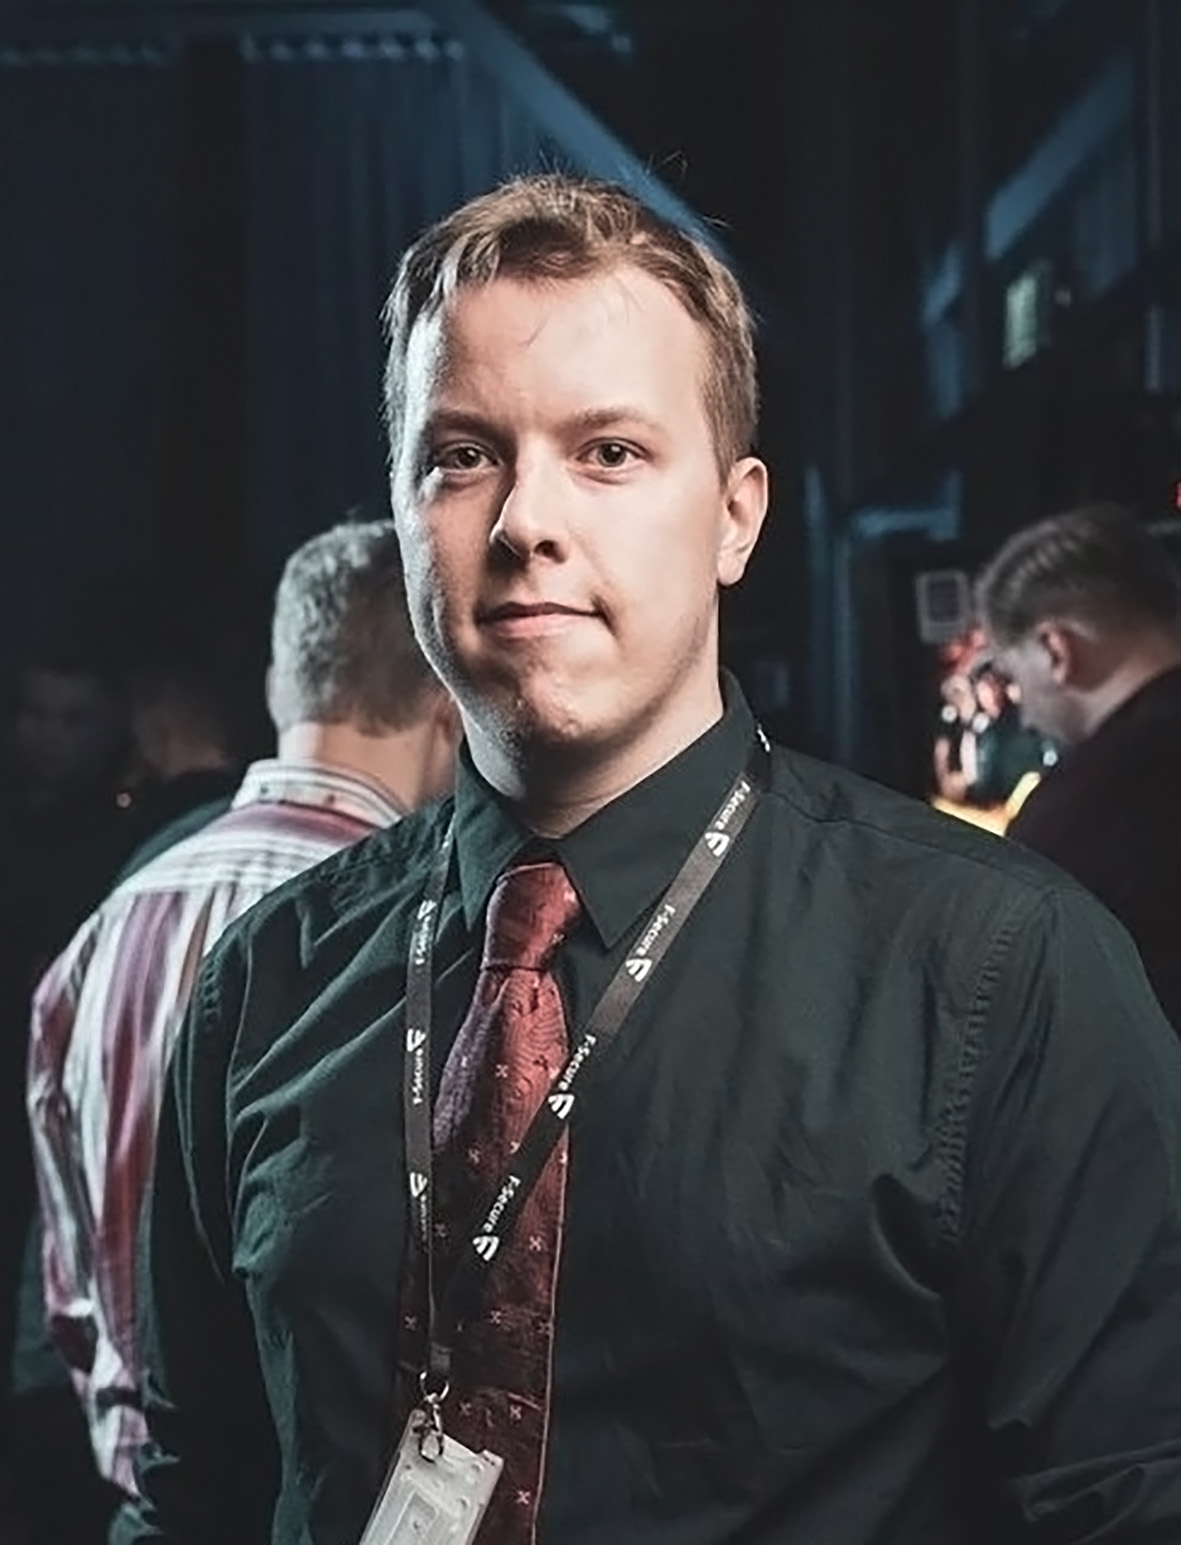 Sami Ruohonen, Threat Researcher bei F-Secure